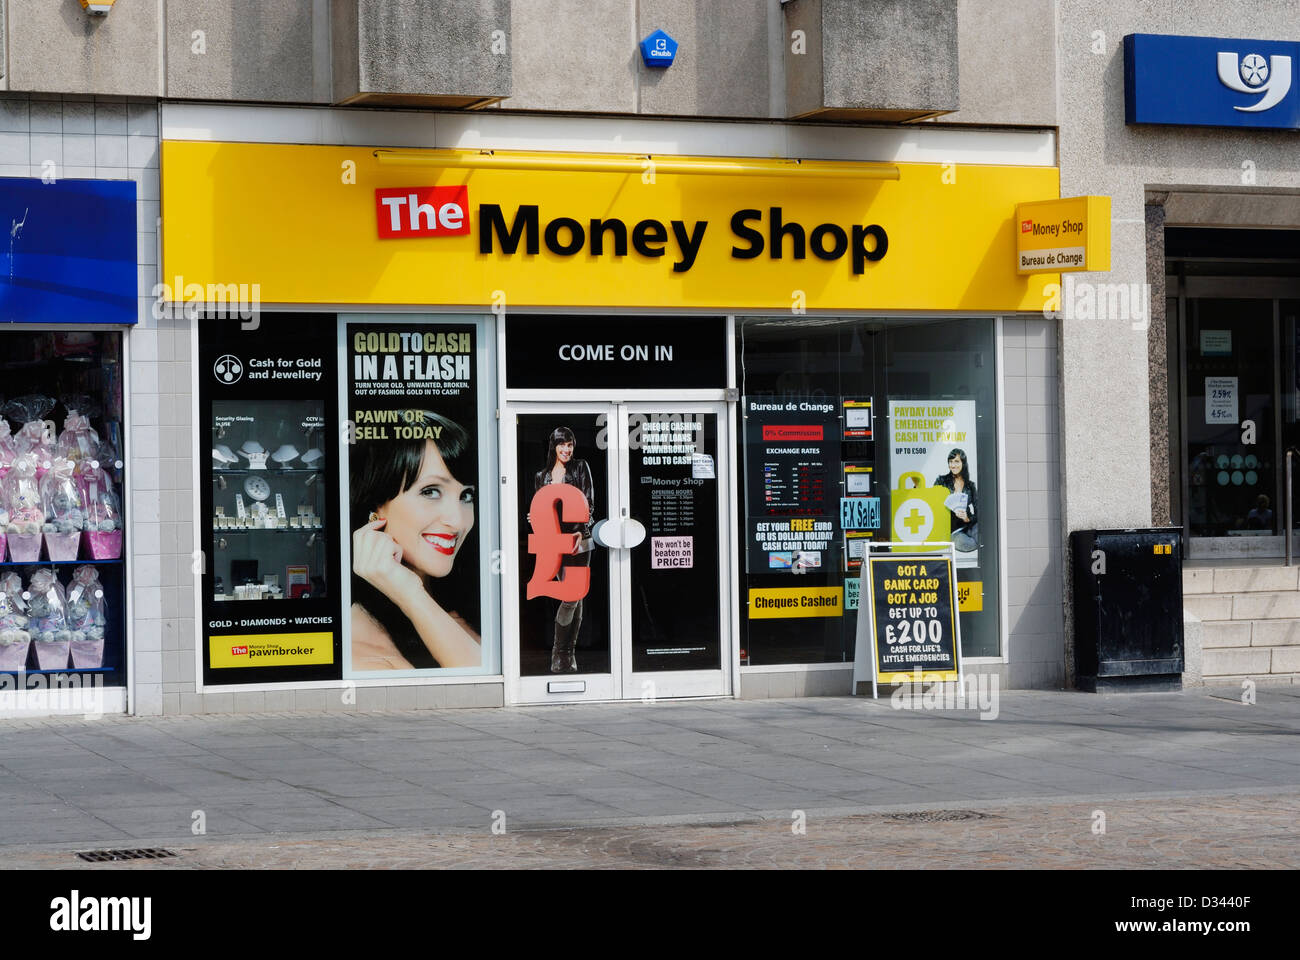 The money shop in blackpool lancashire offering western union and